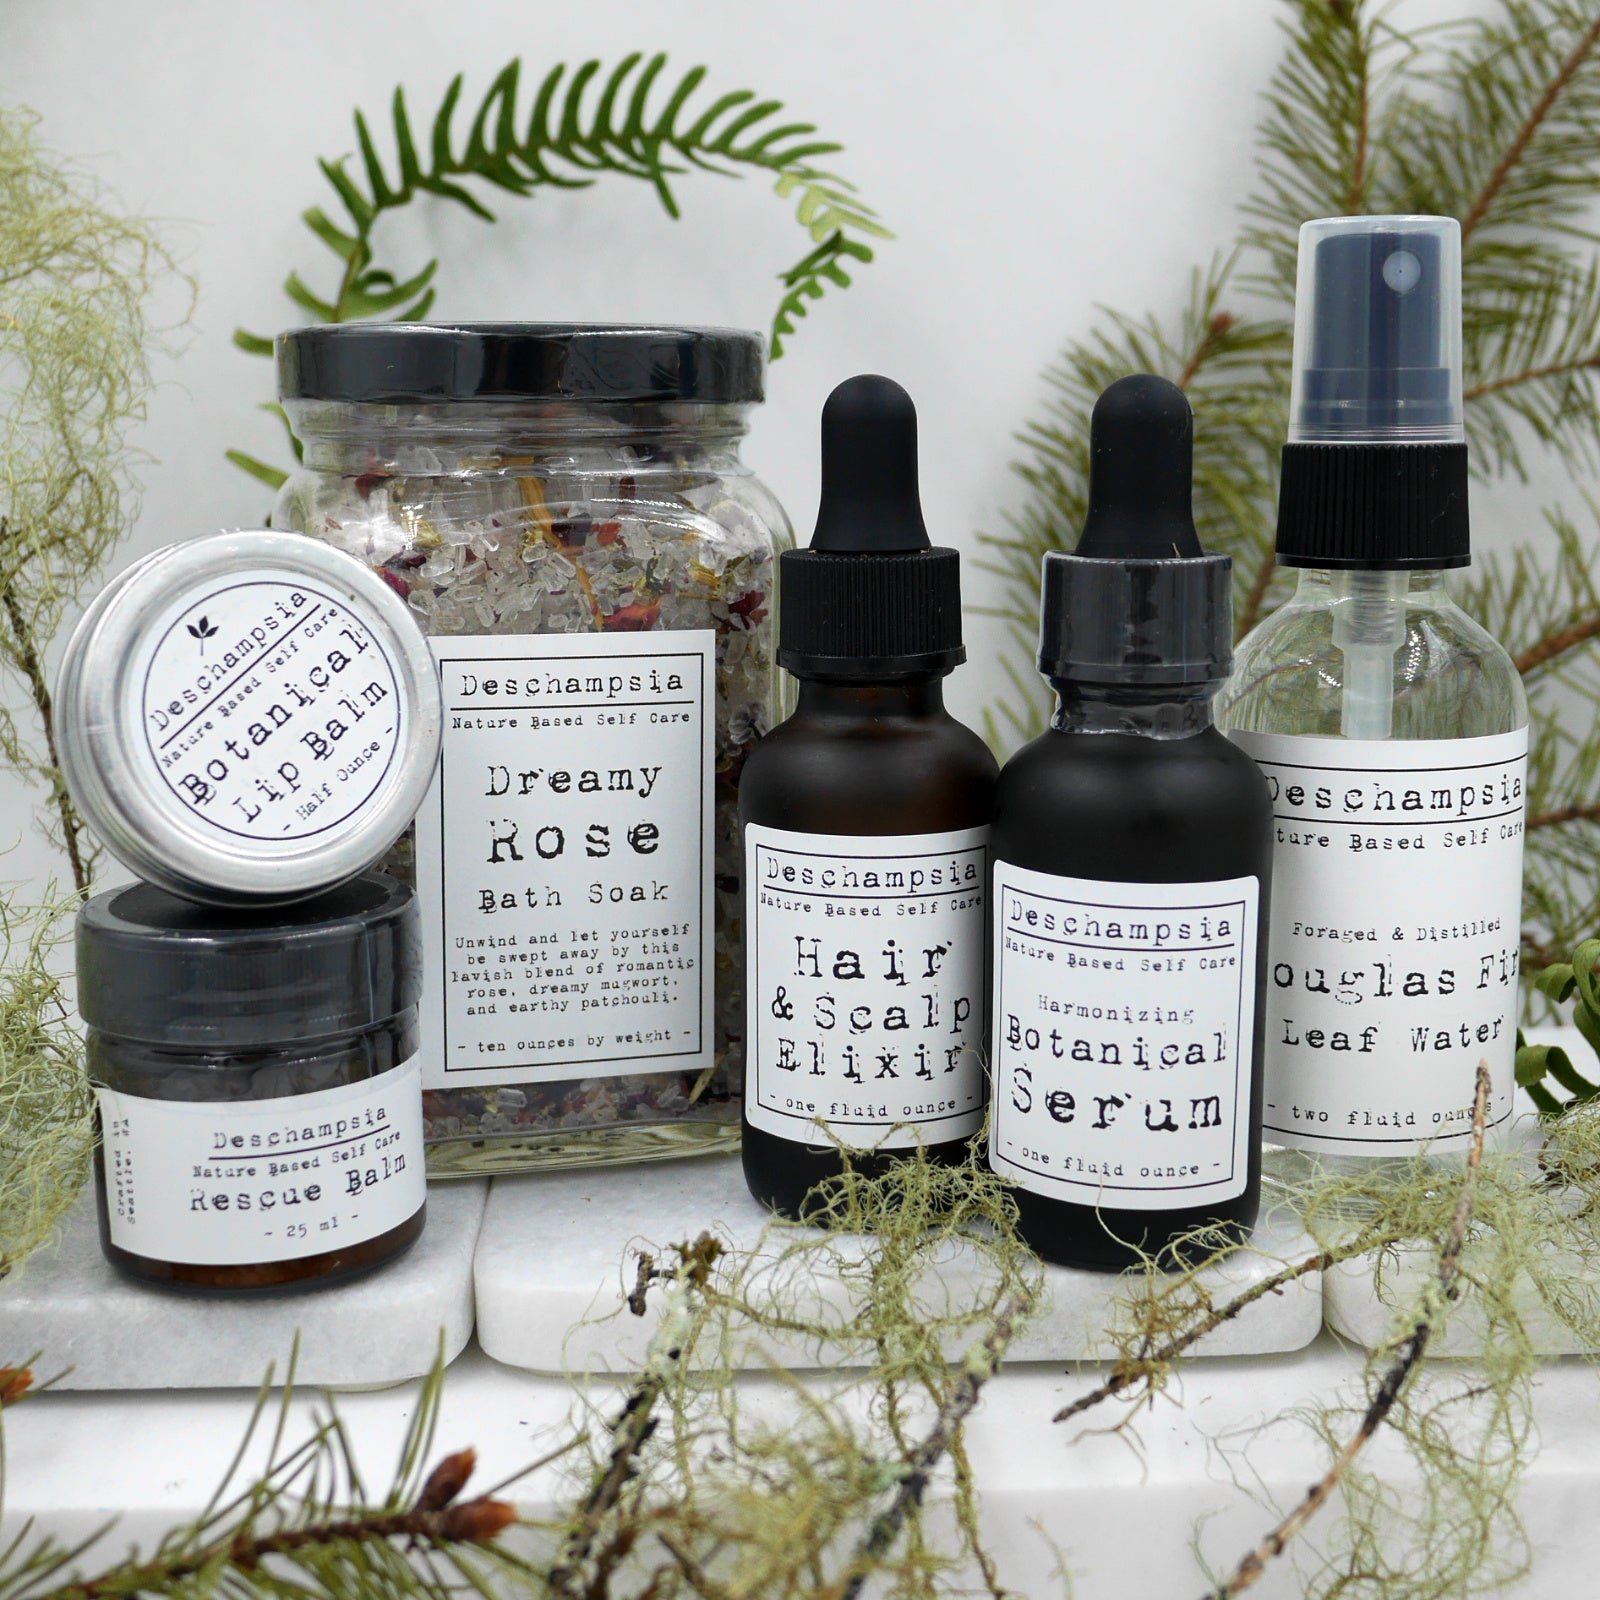 Ultimate Self-Care Kit - Deschampsia - Nature Based Self Care